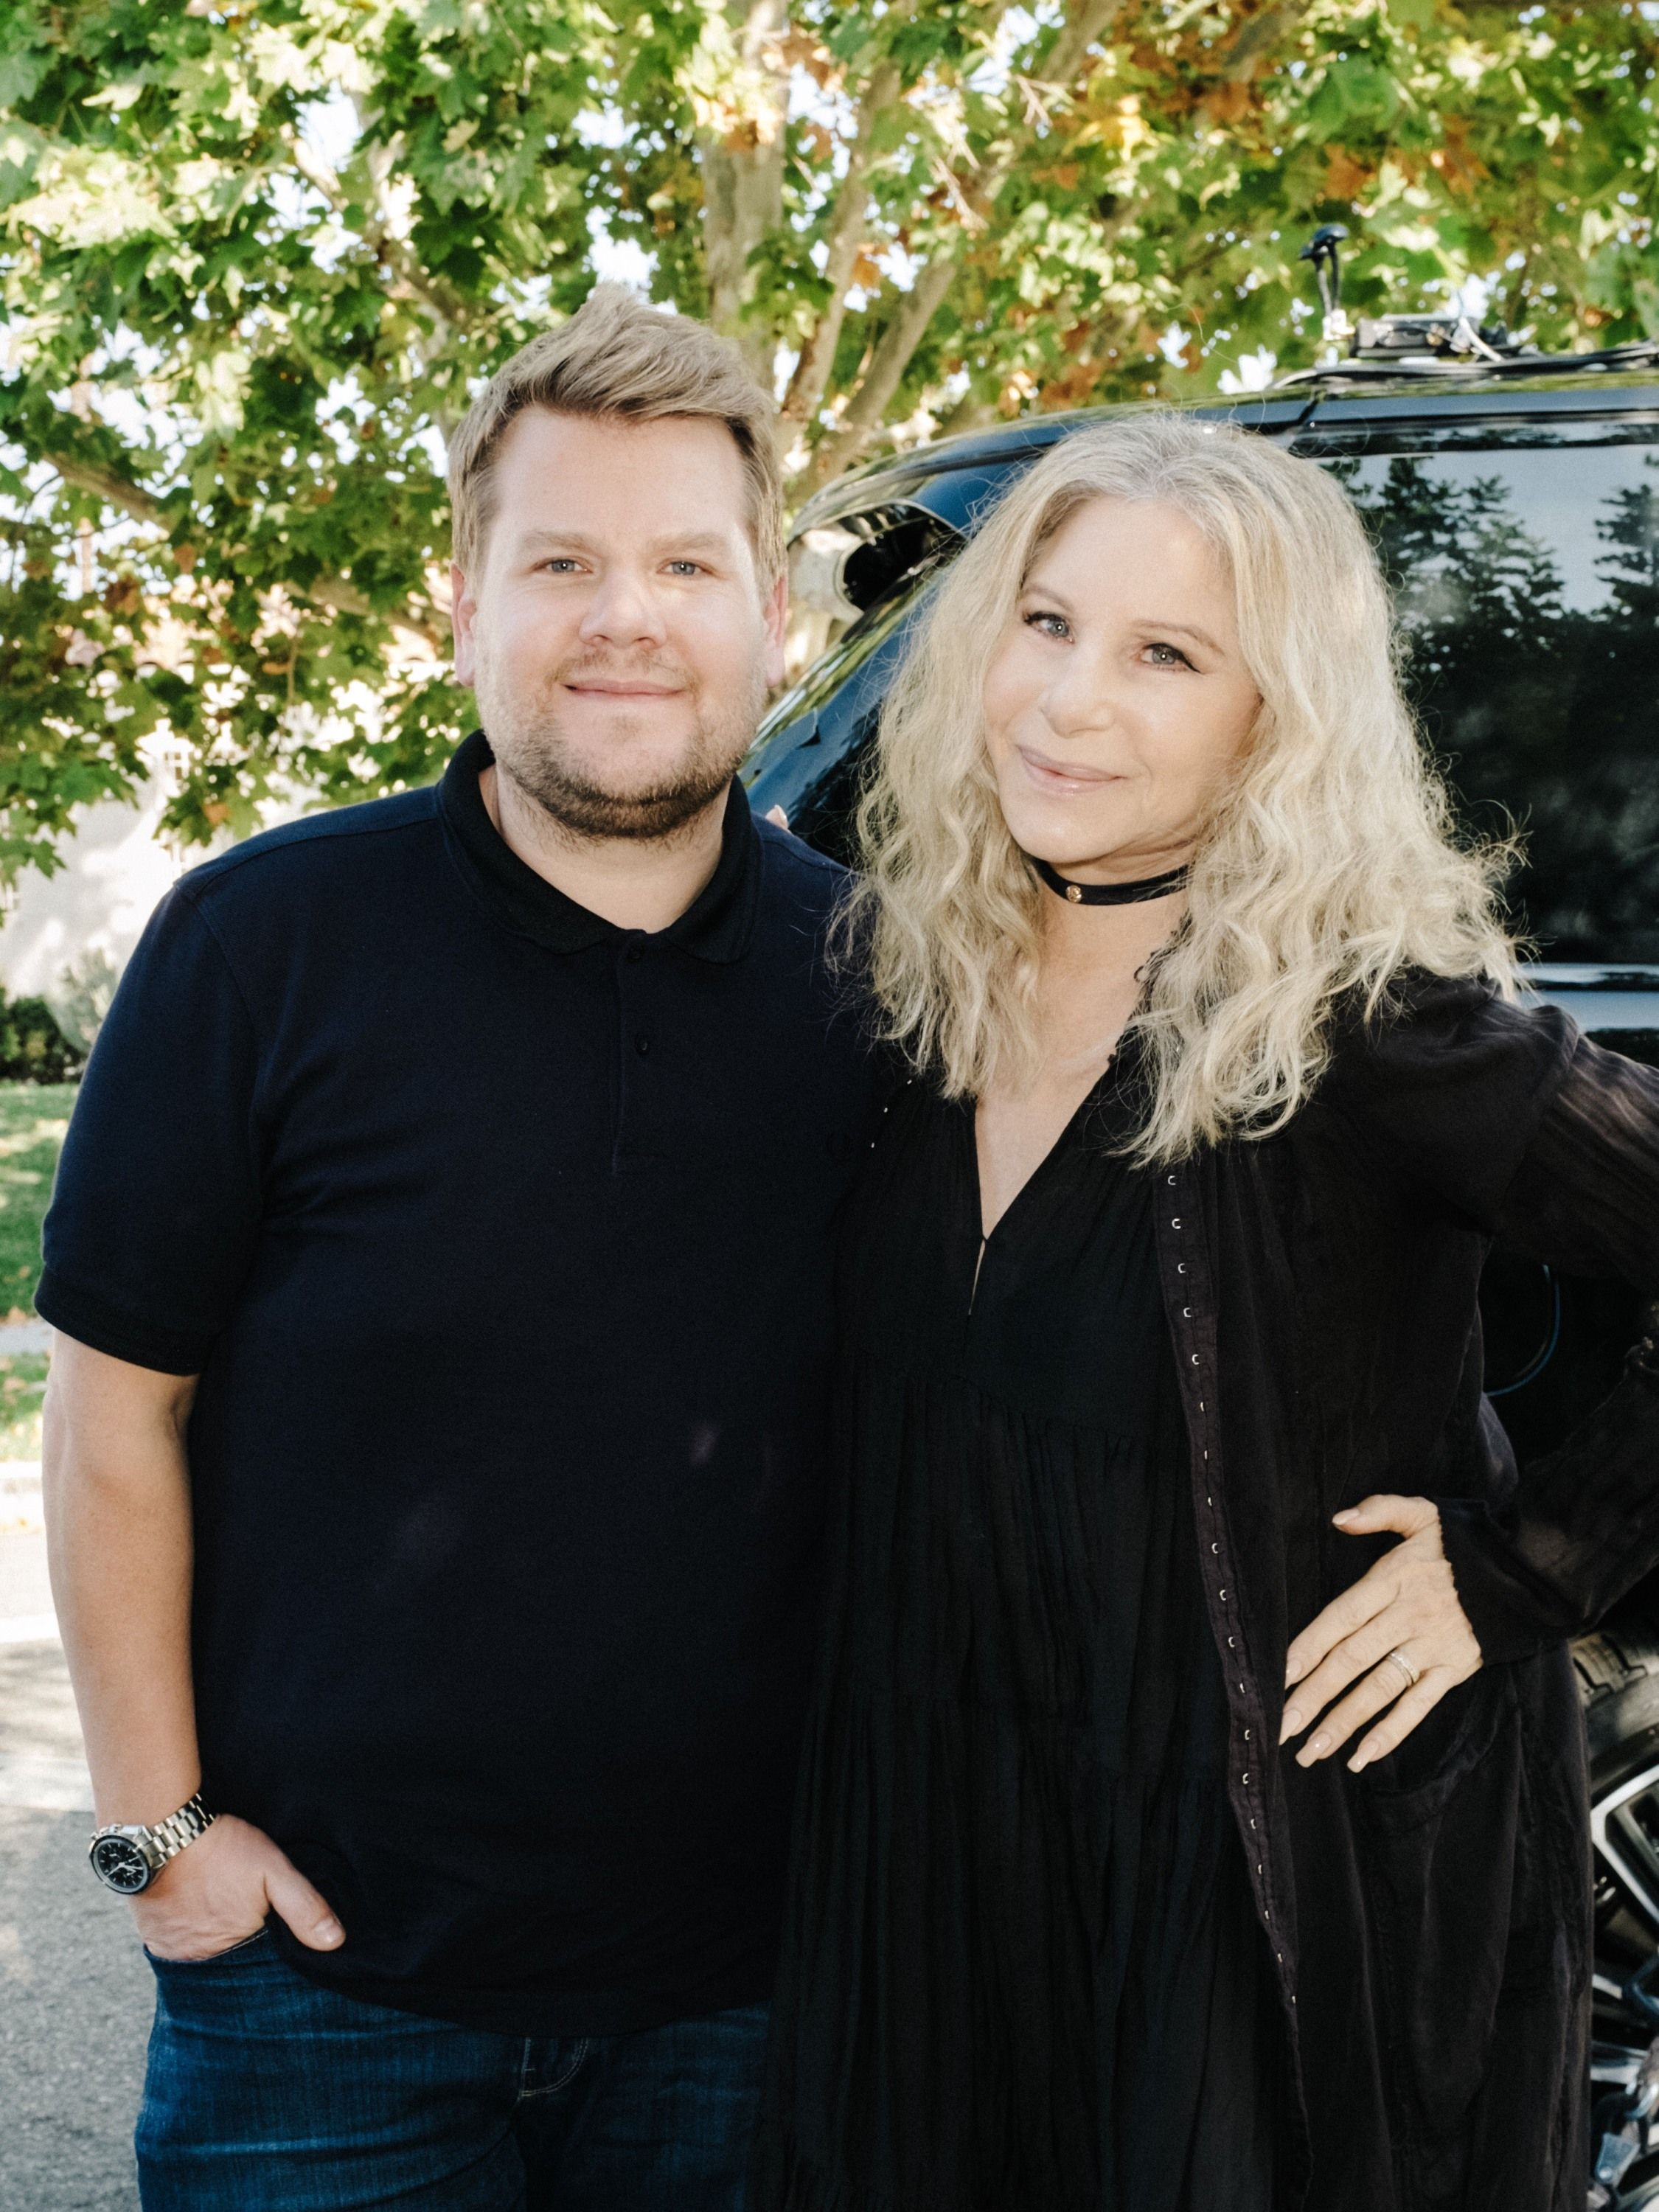 Barbra Streisand Scared James Corden With Tales Of Driving Woes